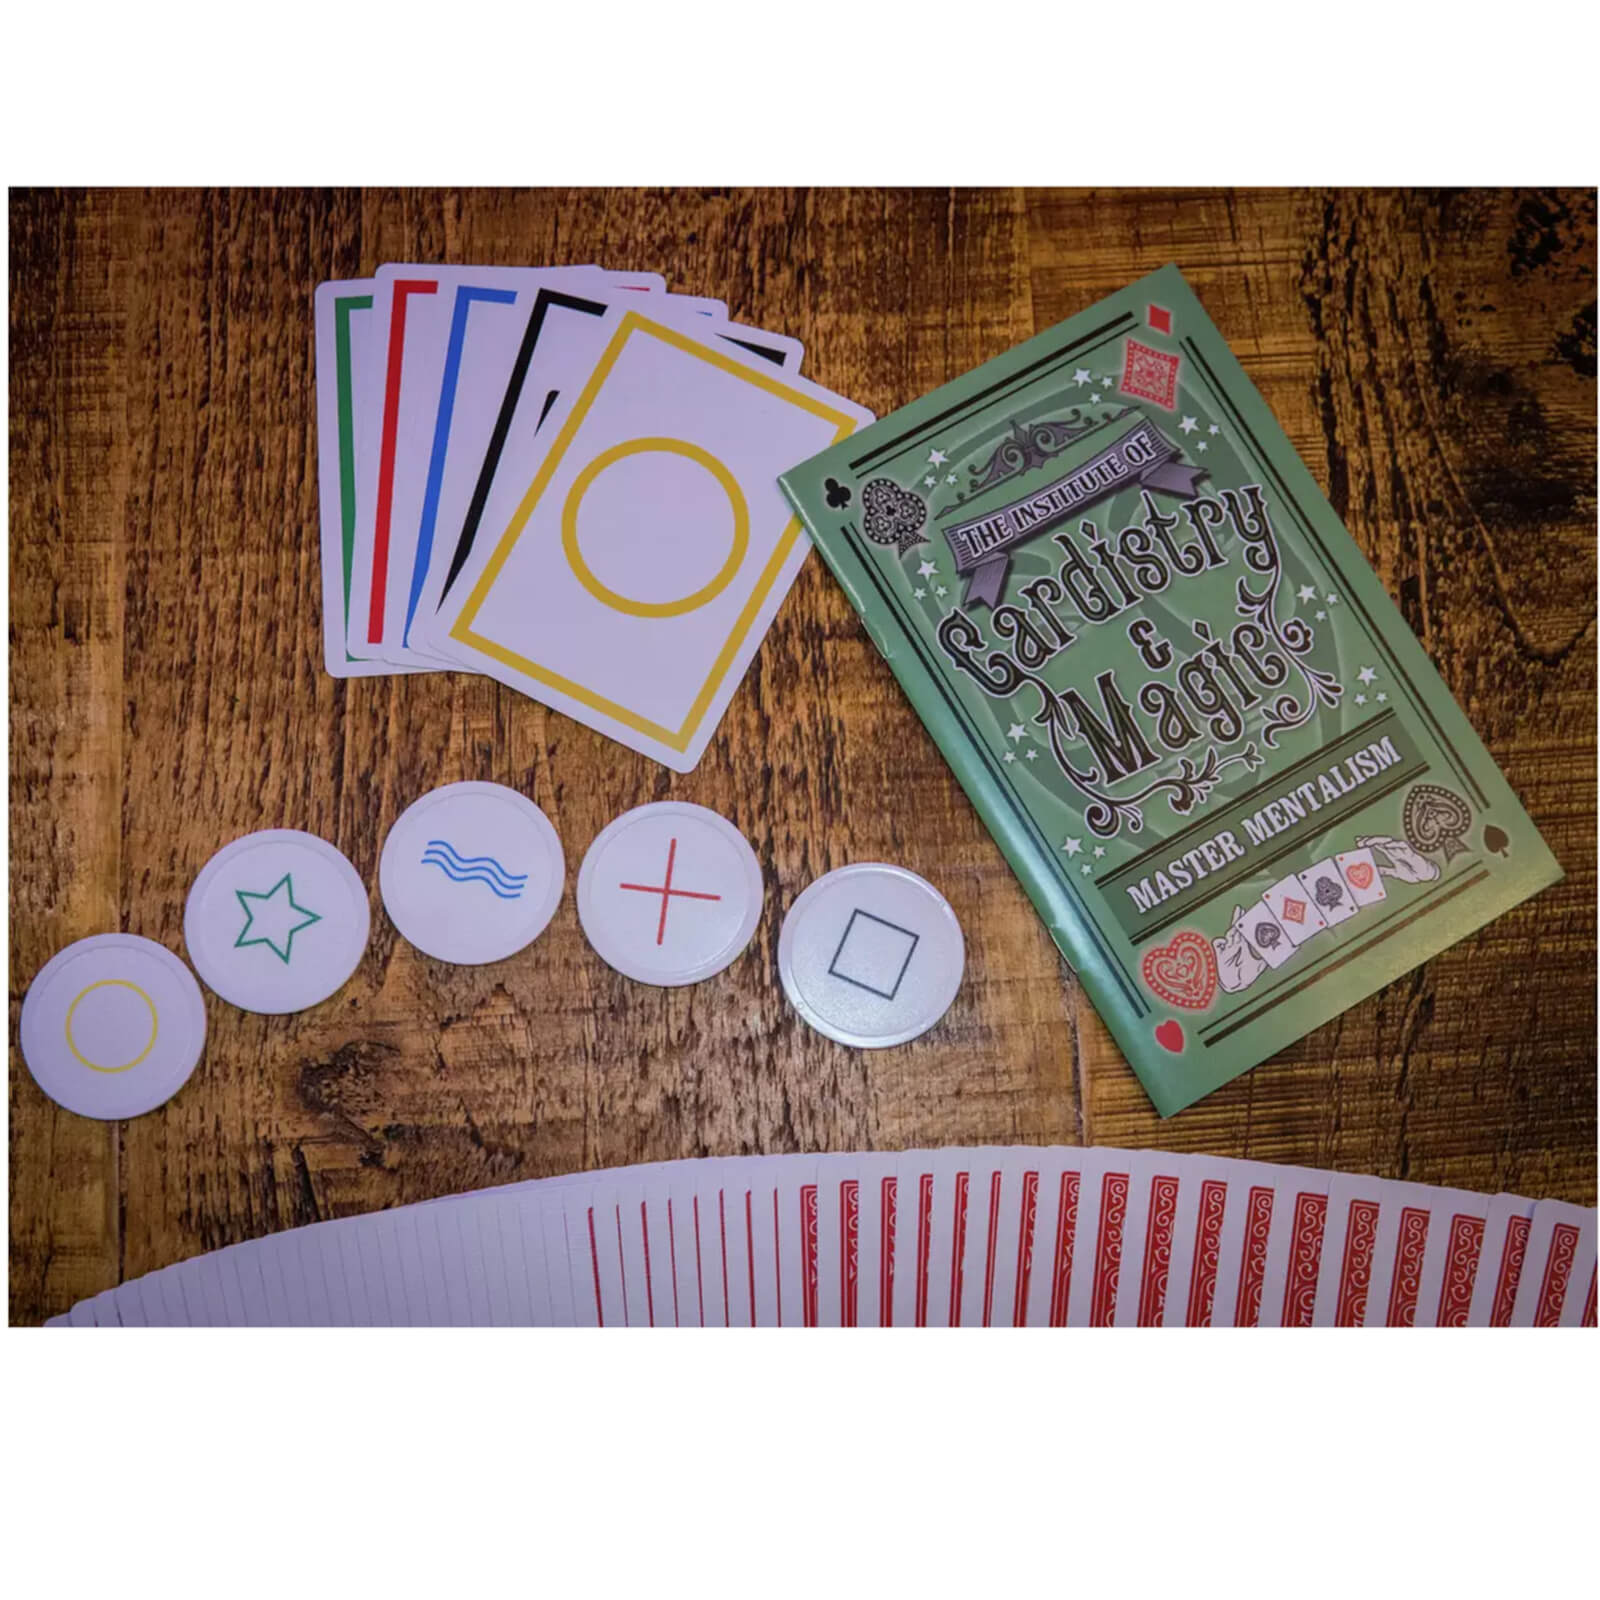 Image of The Institute of Cardistry & Magic - Mentalism